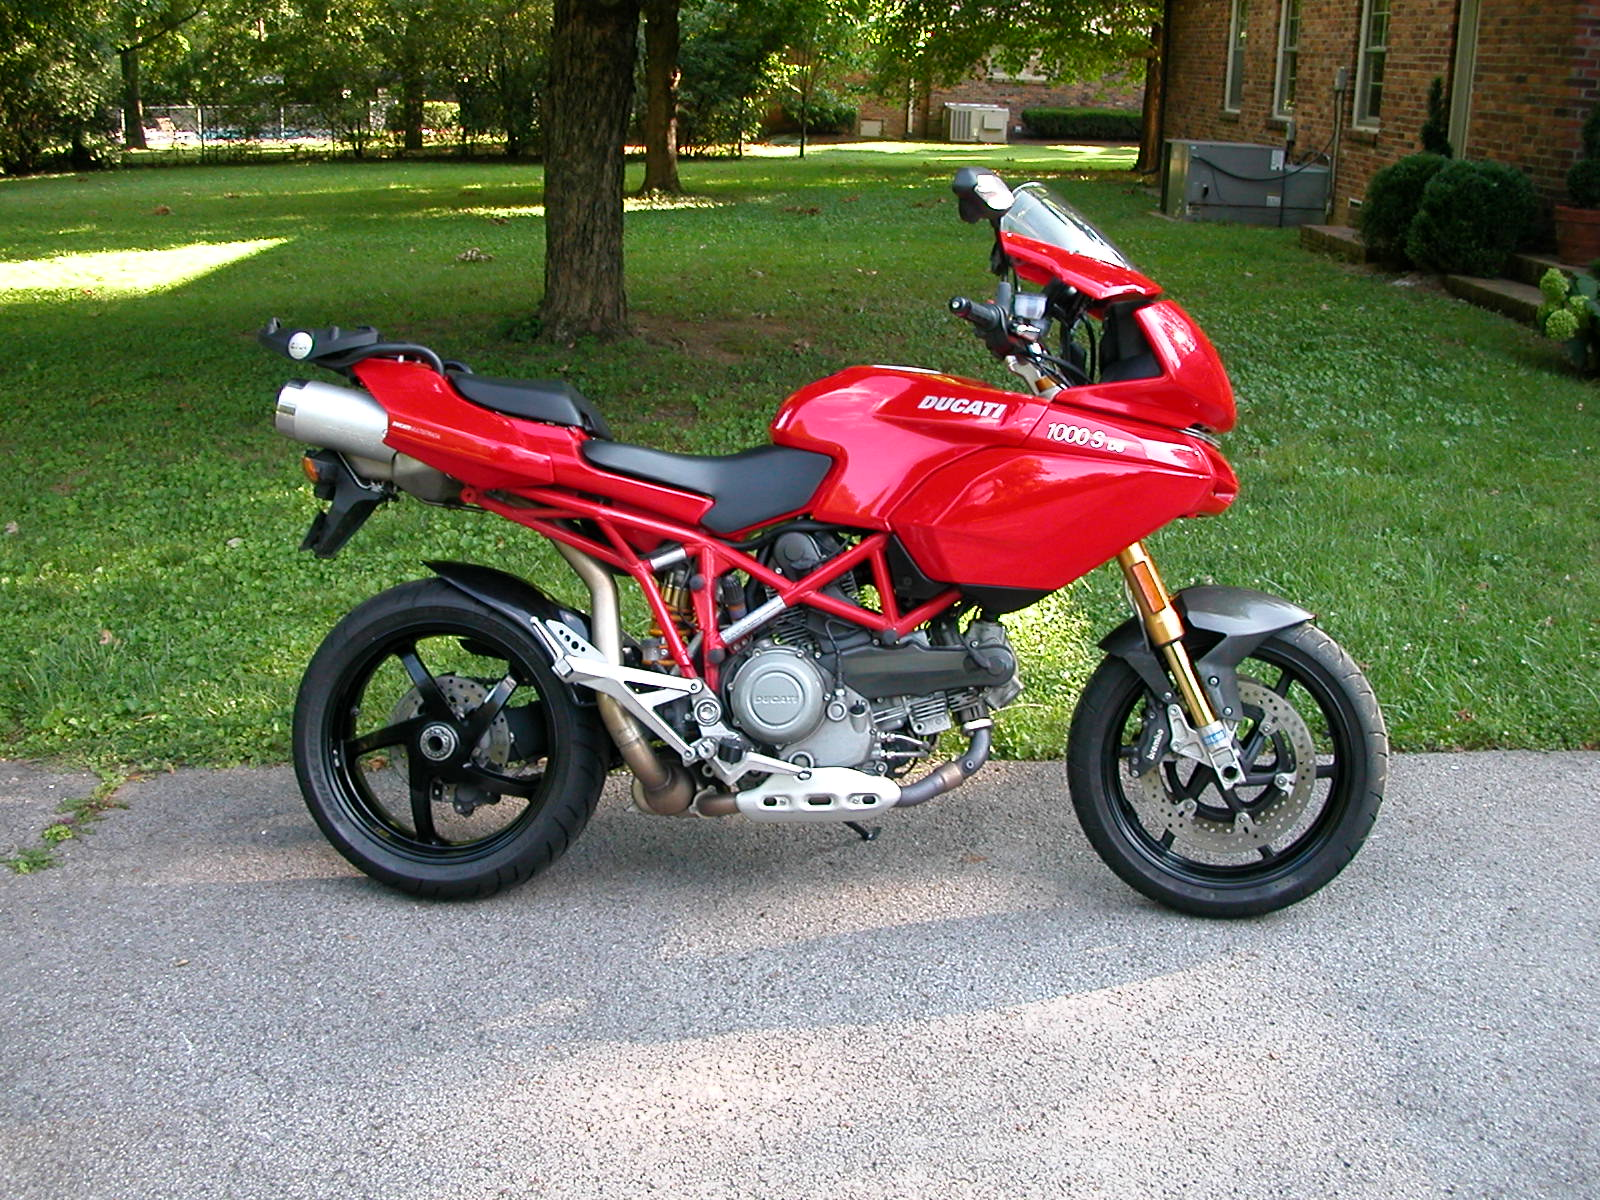 Ducati Multistrada 1000 DS #10